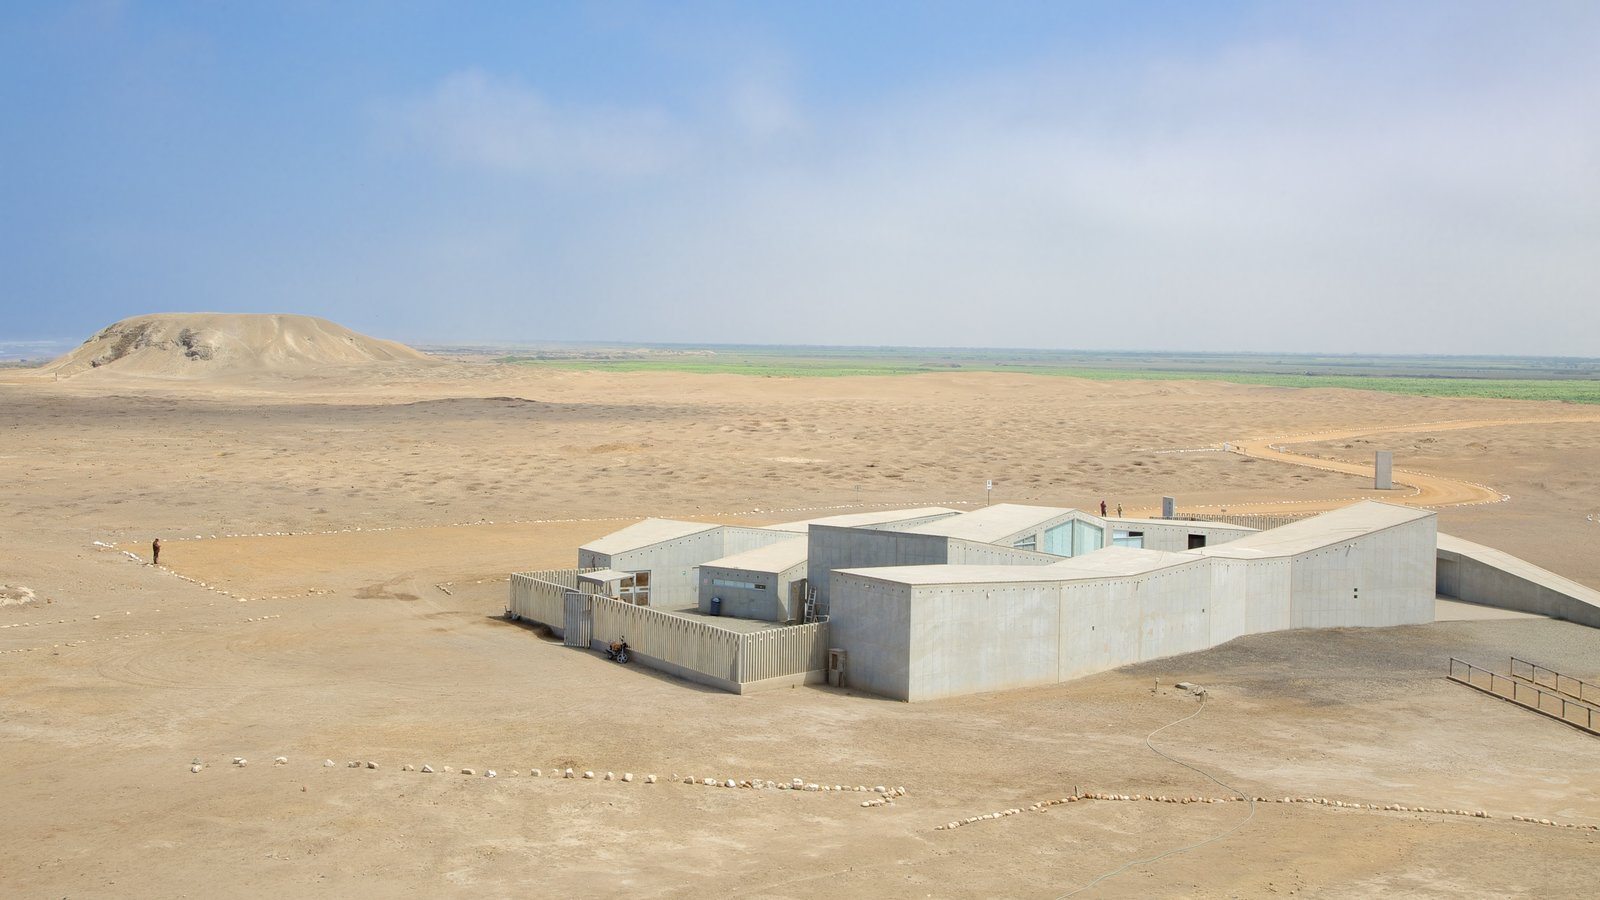 El Brujo which includes tranquil scenes, landscape views and desert views